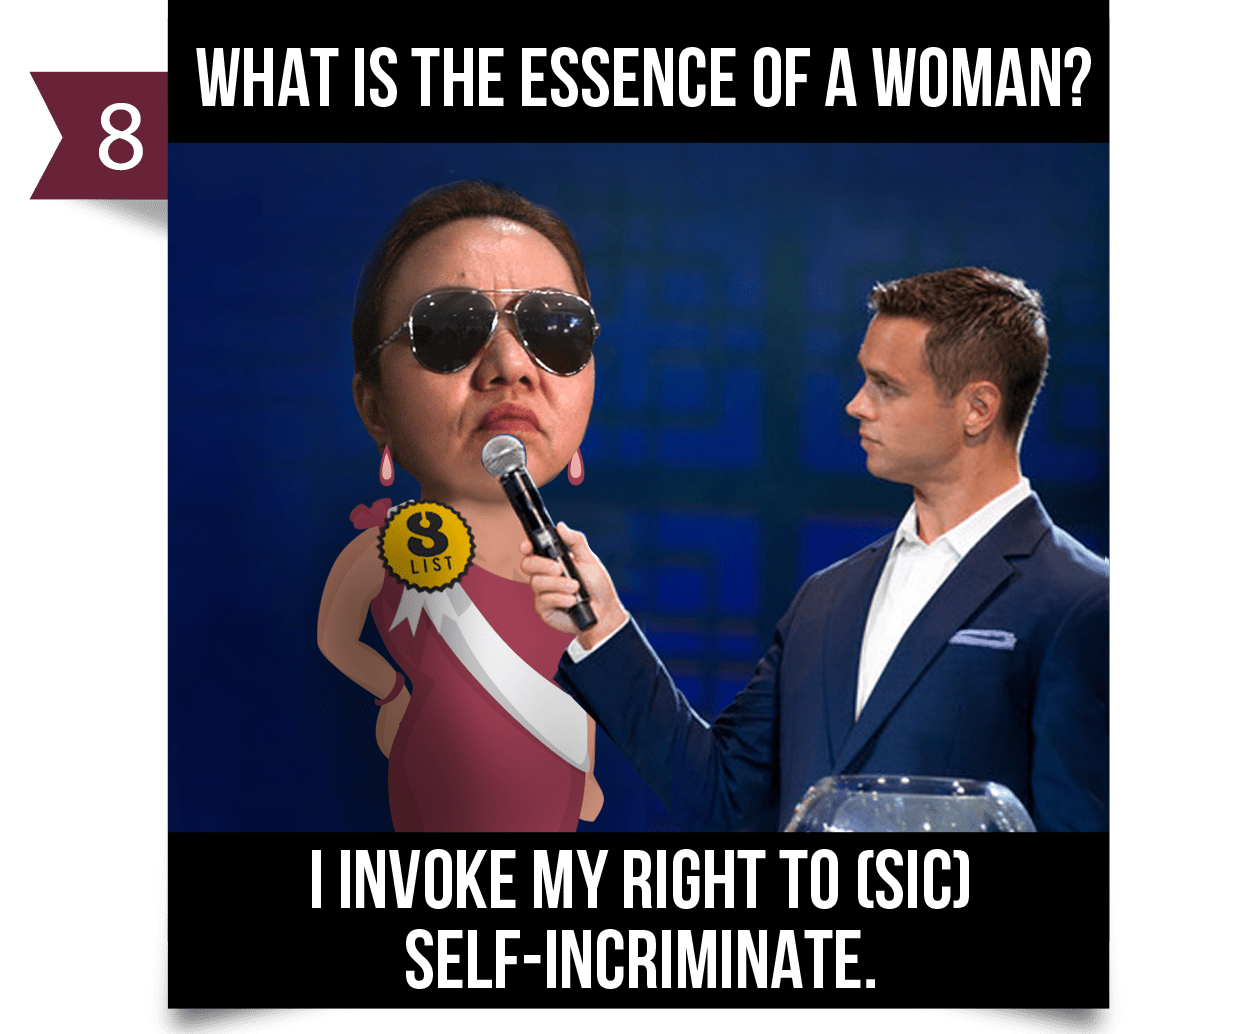 8. What is the essence of a woman? I INVOKE MY RIGHT TO (sic) SELF-INCRIMINATE.